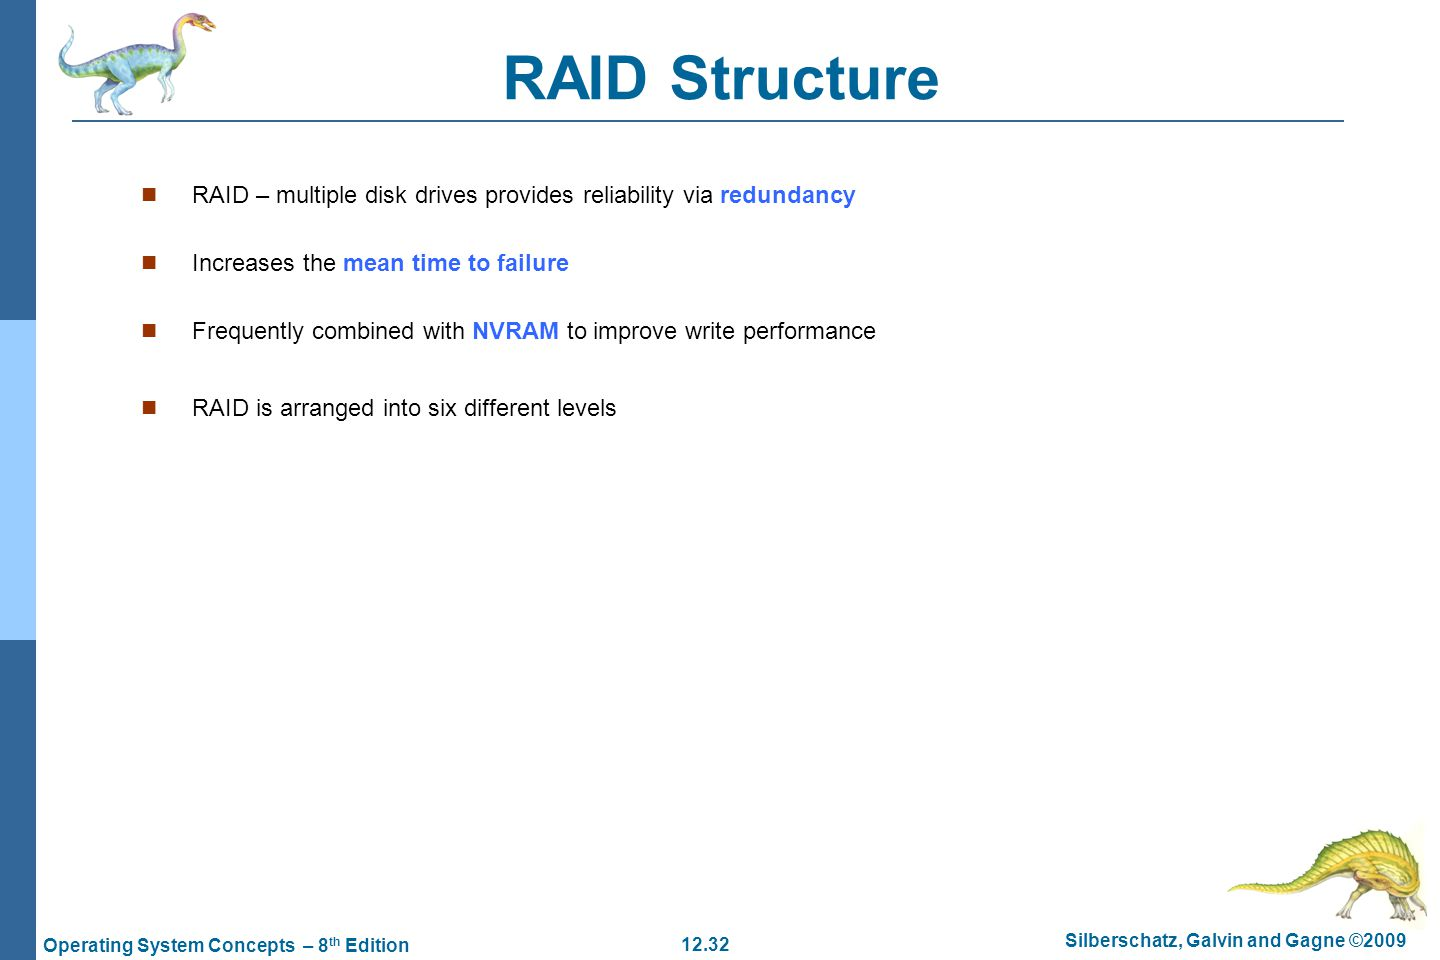 RAID Structure RAID – multiple disk drives provides reliability via redundancy. Increases the mean time to failure.